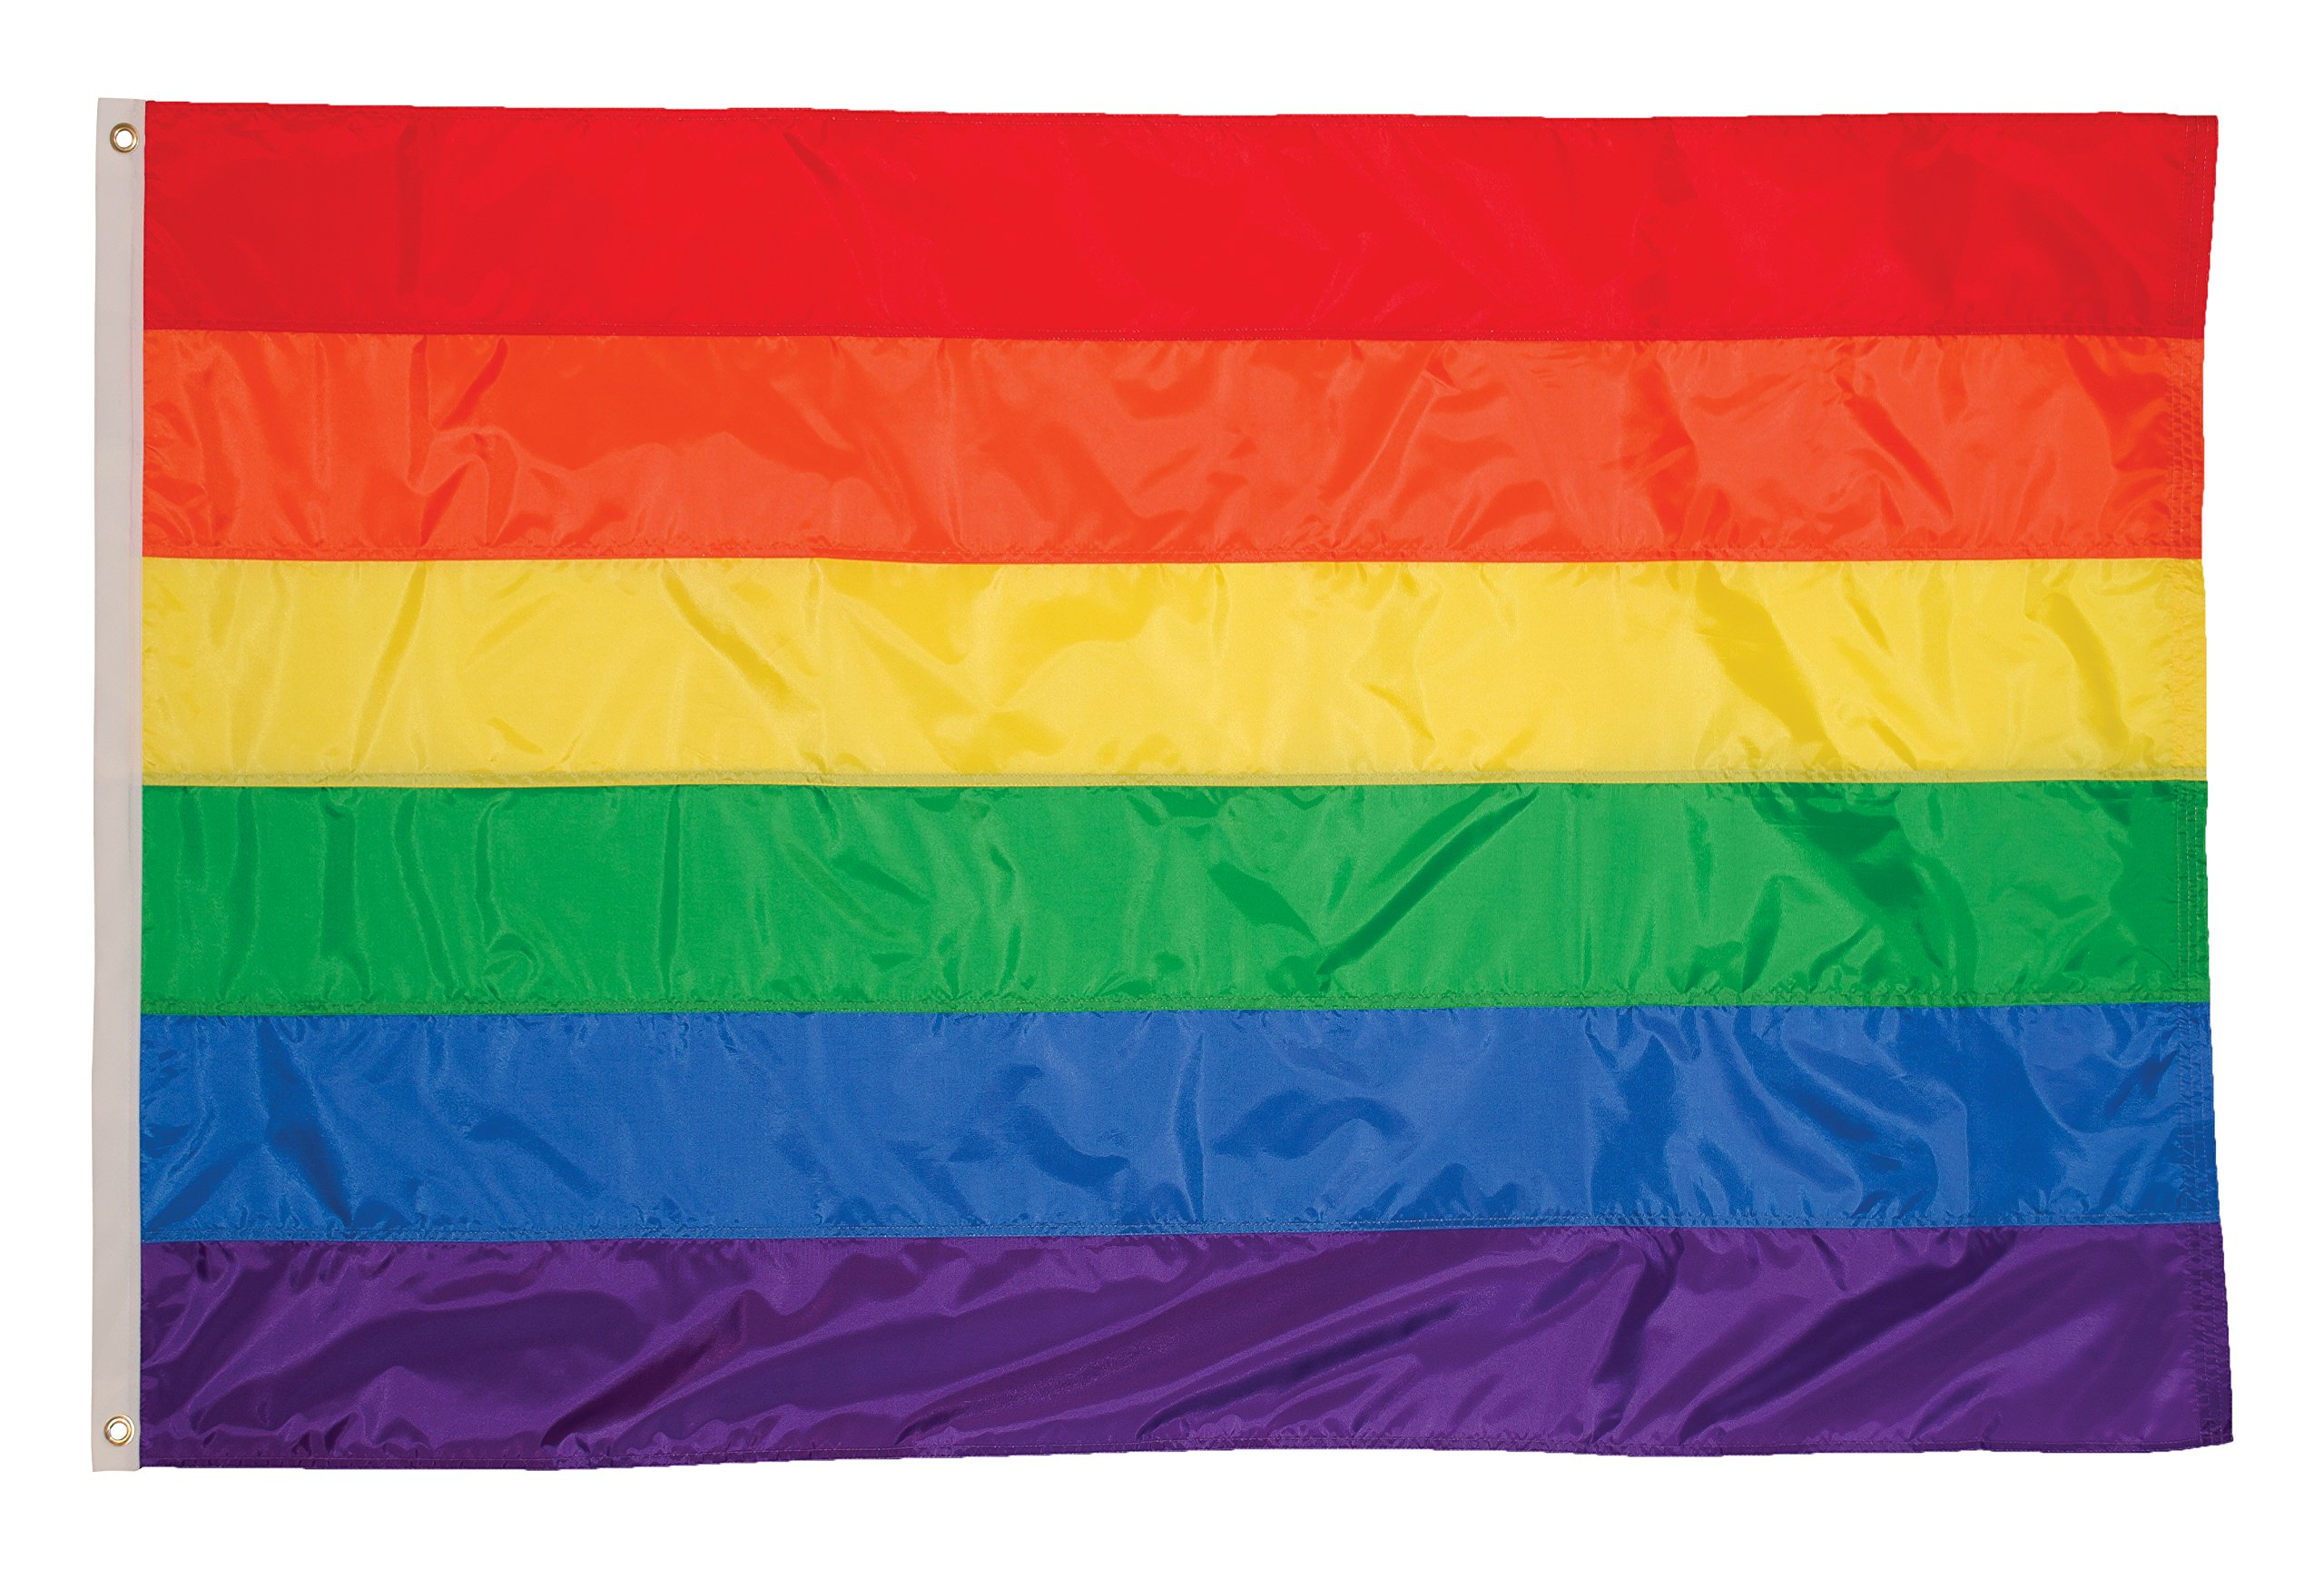 In the Breeze 5 Foot 8 Foot Rainbow Flag - Rainbow Grommet Flag Sewn Stripes